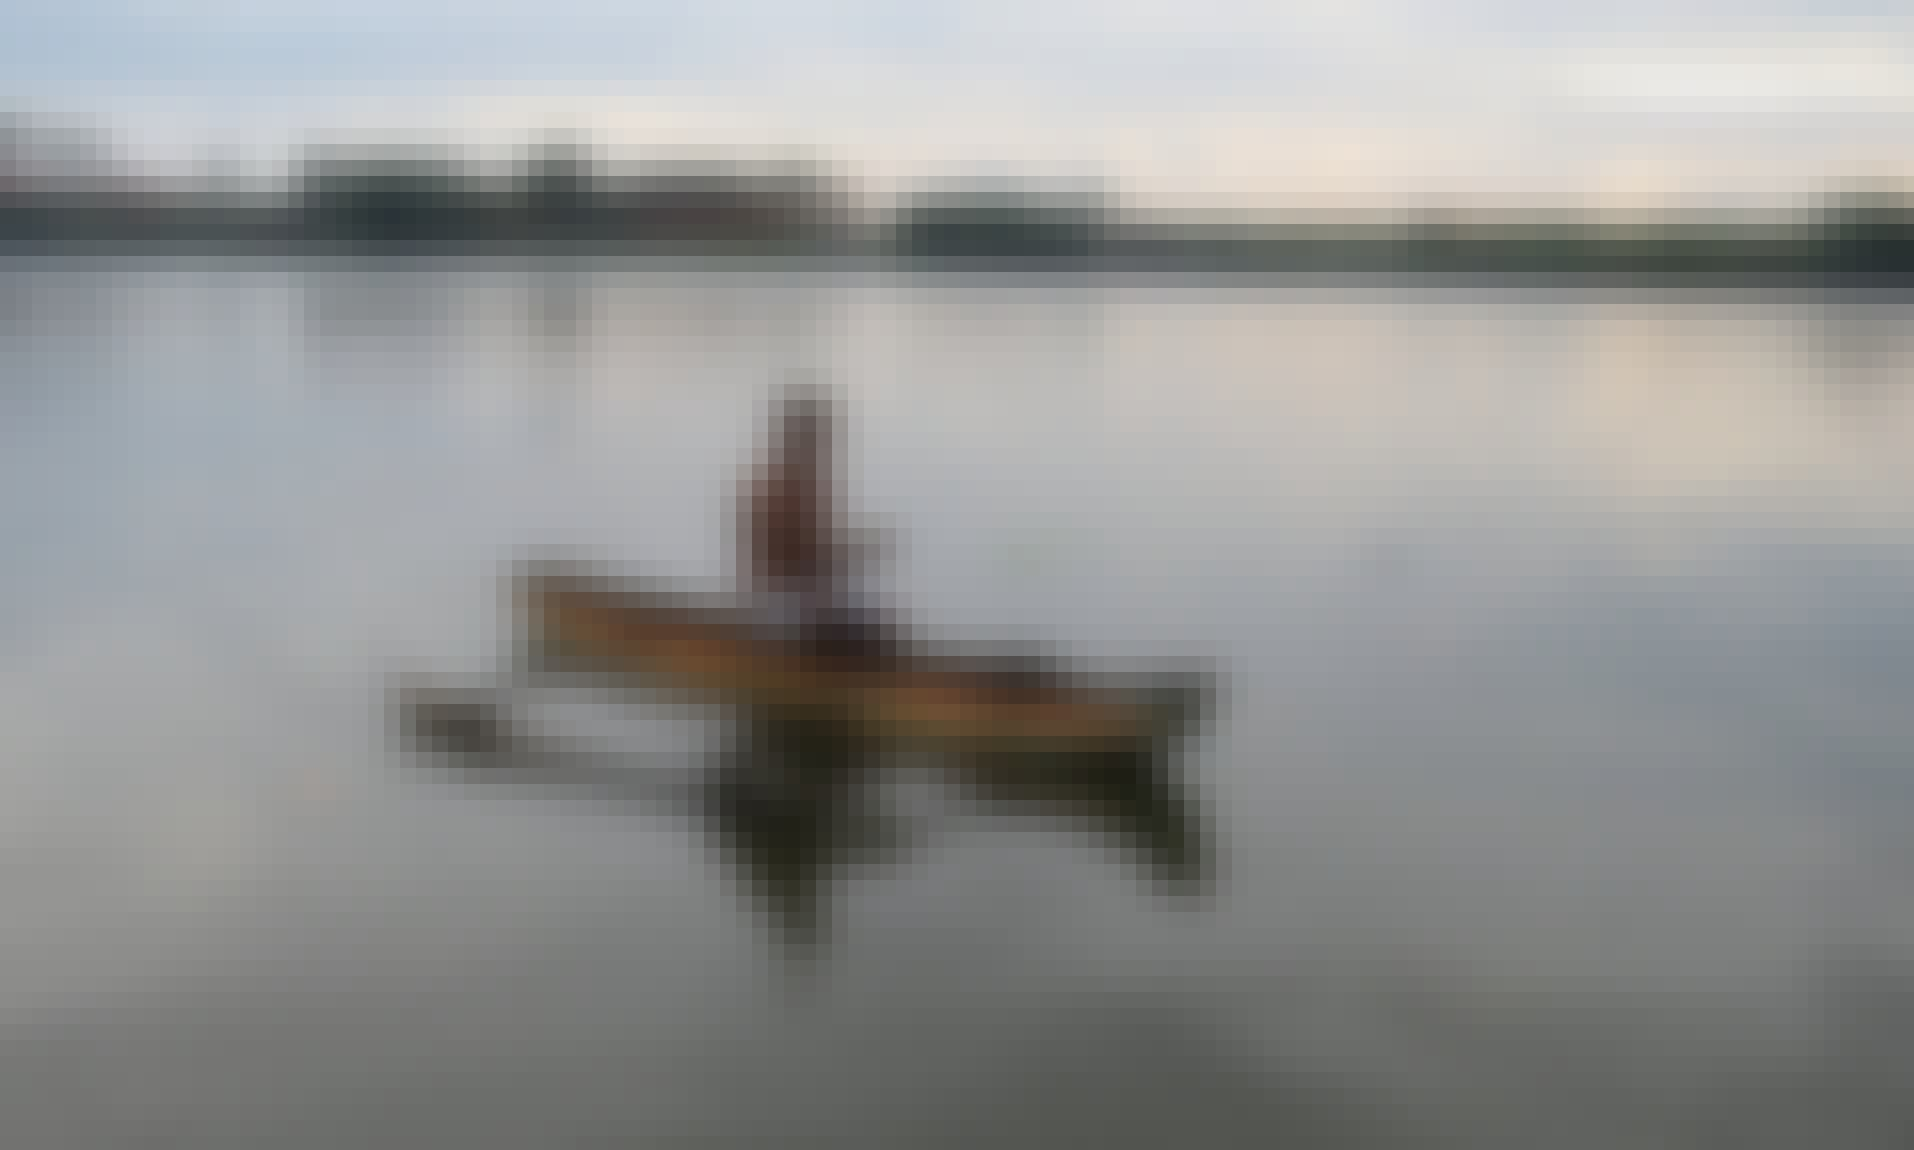 Experience a Calm Steady Paced Touring in Aluthgama, Sri Lanka! Reserve a Canoe!